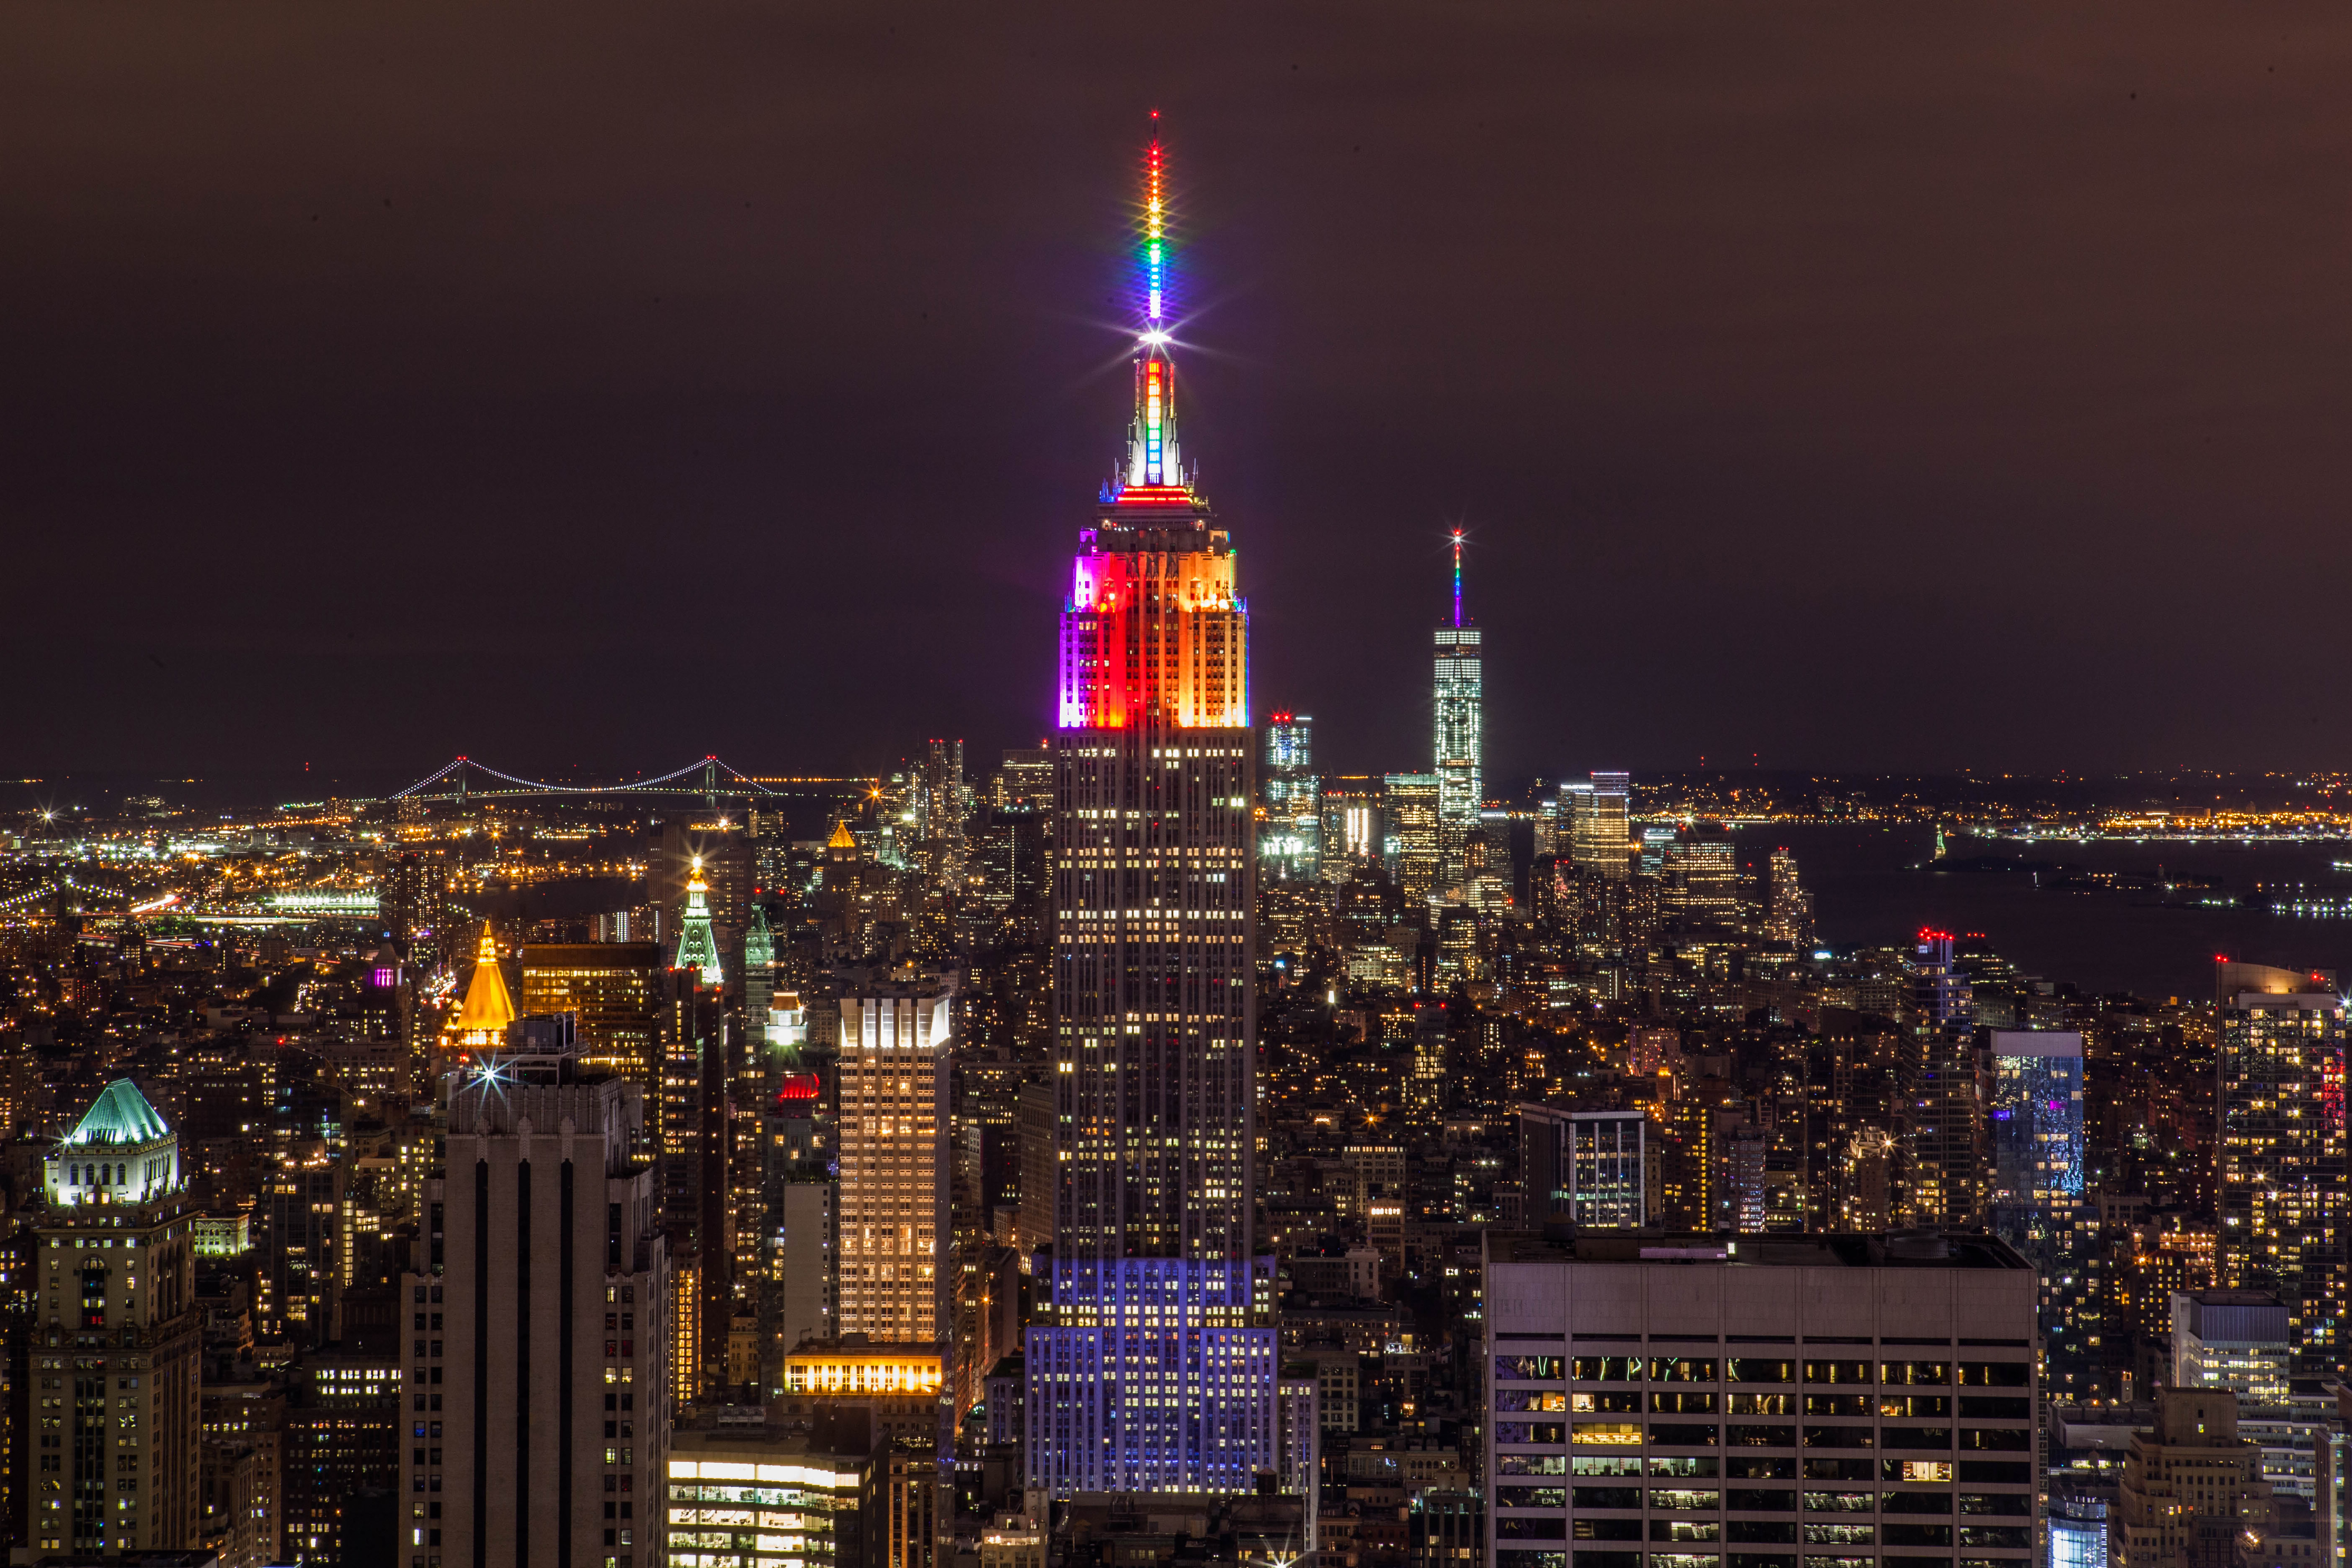 Download Wallpaper Night Empire State Building - Empire_State_Building_in_Rainbow_Colors_for_Gay_Pride_2015_%2819258537982%29  Picture-987056.jpg